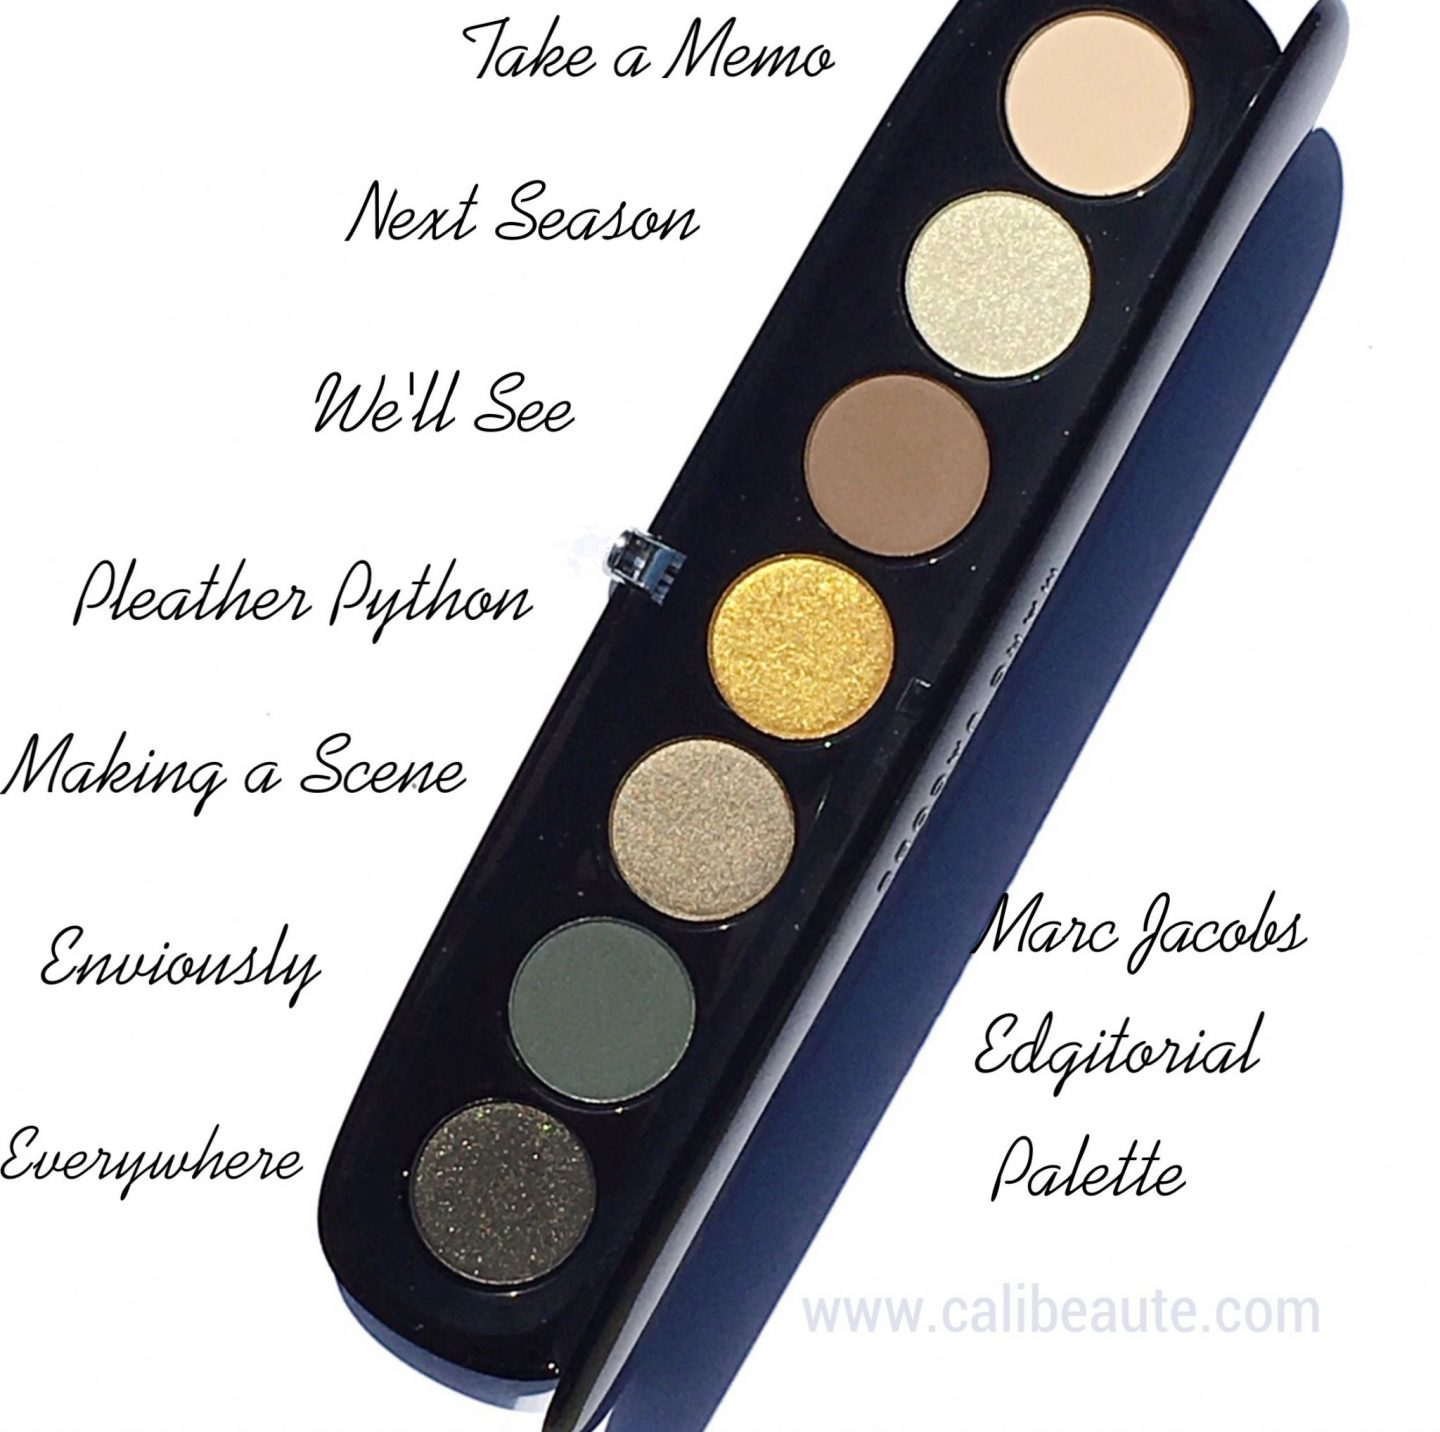 Marc Jacobs Edgitorial Palette Review |www.calibeaute.com